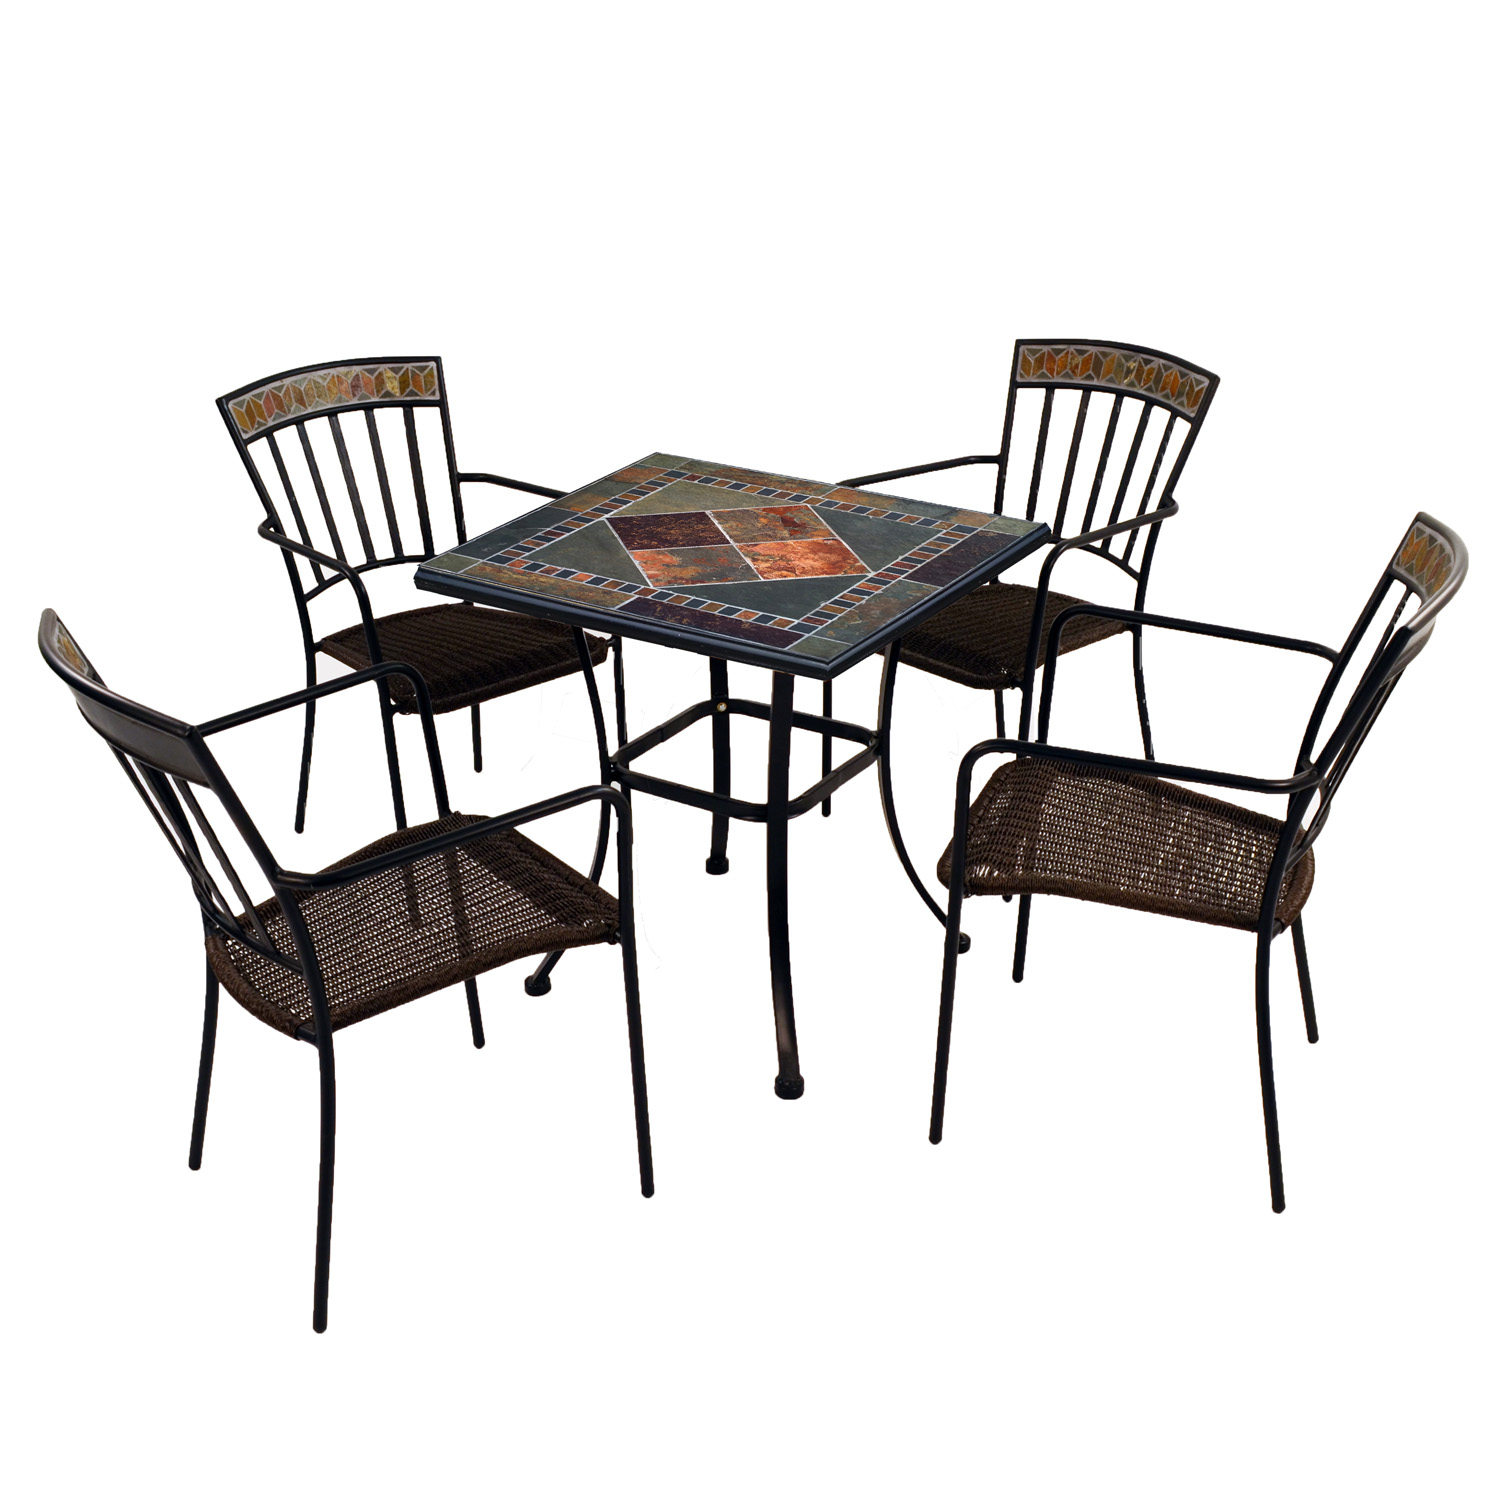 Clandon patio table for Patio products